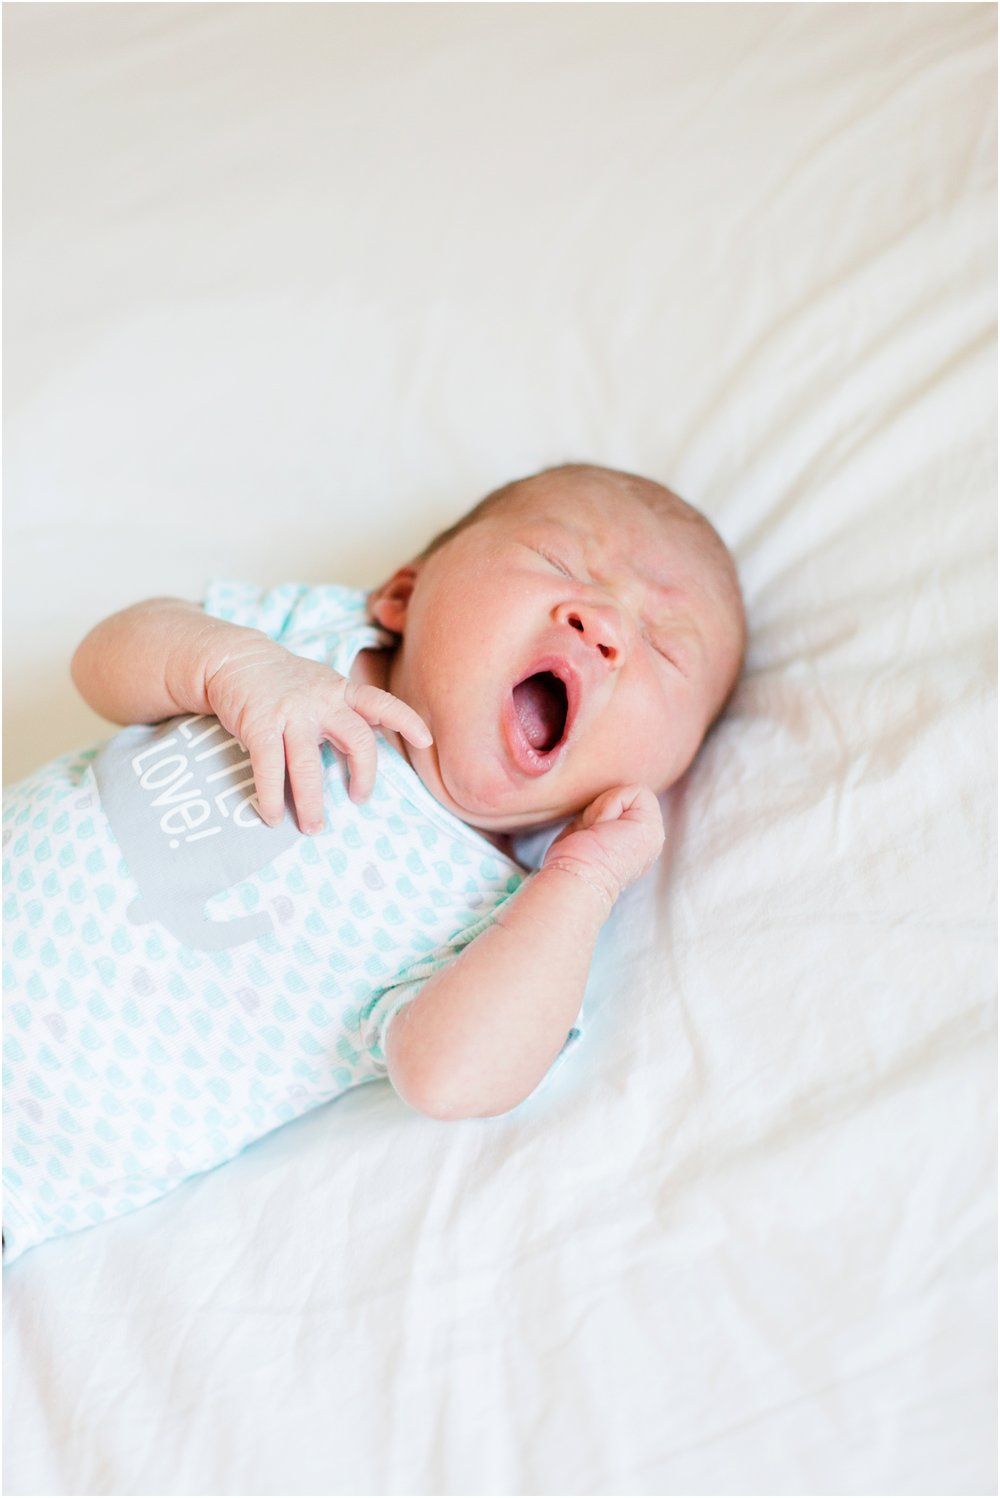 Lifestyle newborn pictures at home by Briana Calderon Photography_2435.jpg